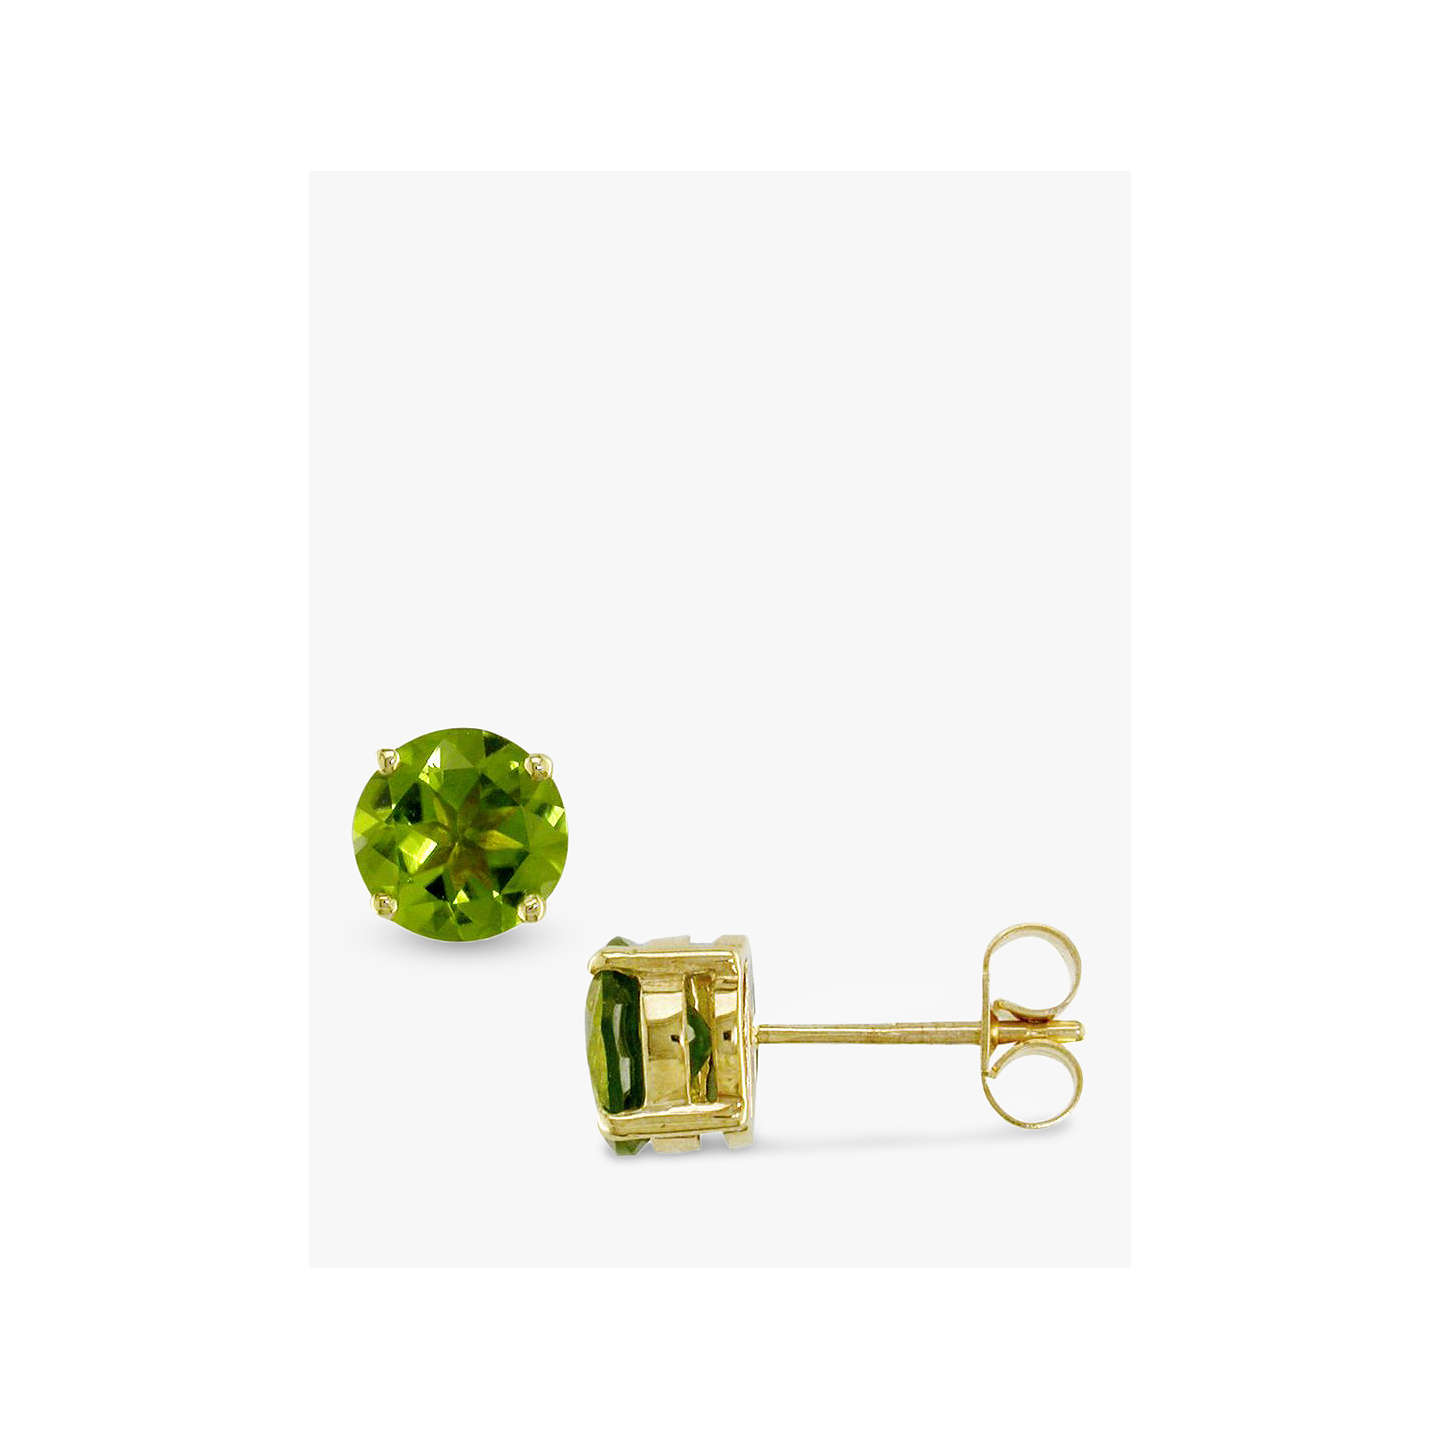 product shop earrings peridot theo fennell false different jewellery the scale stud bee crop upscale subsampling